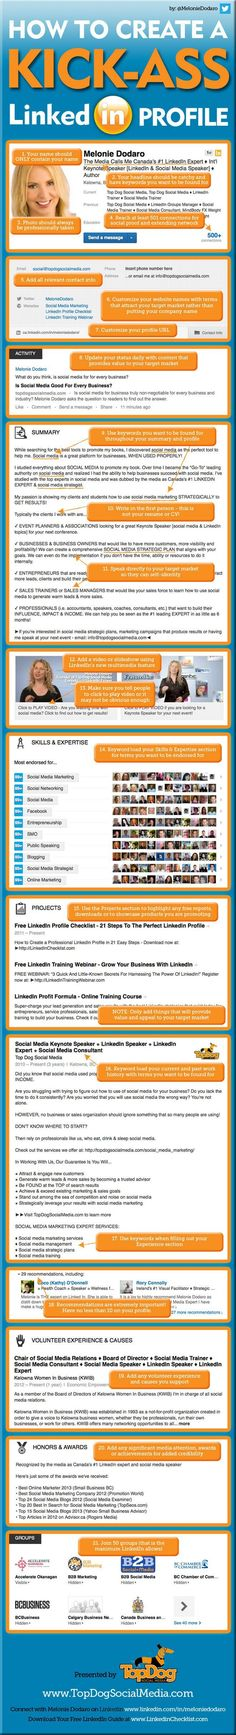 21 steps to create an awesome LinkedIn profile.